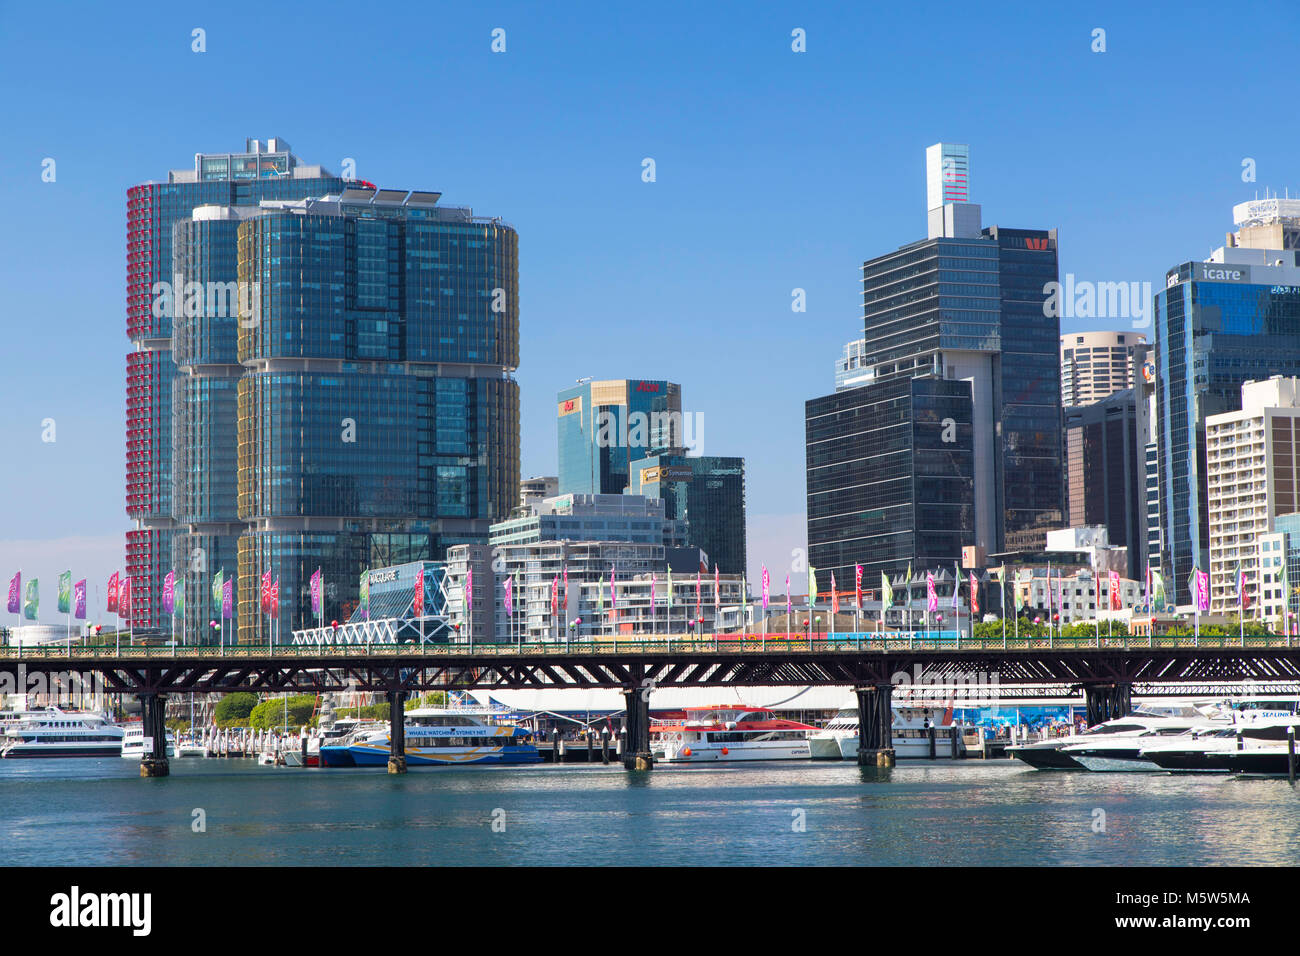 Barangaroo et Darling Harbour, Sydney, New South Wales, Australia Photo Stock